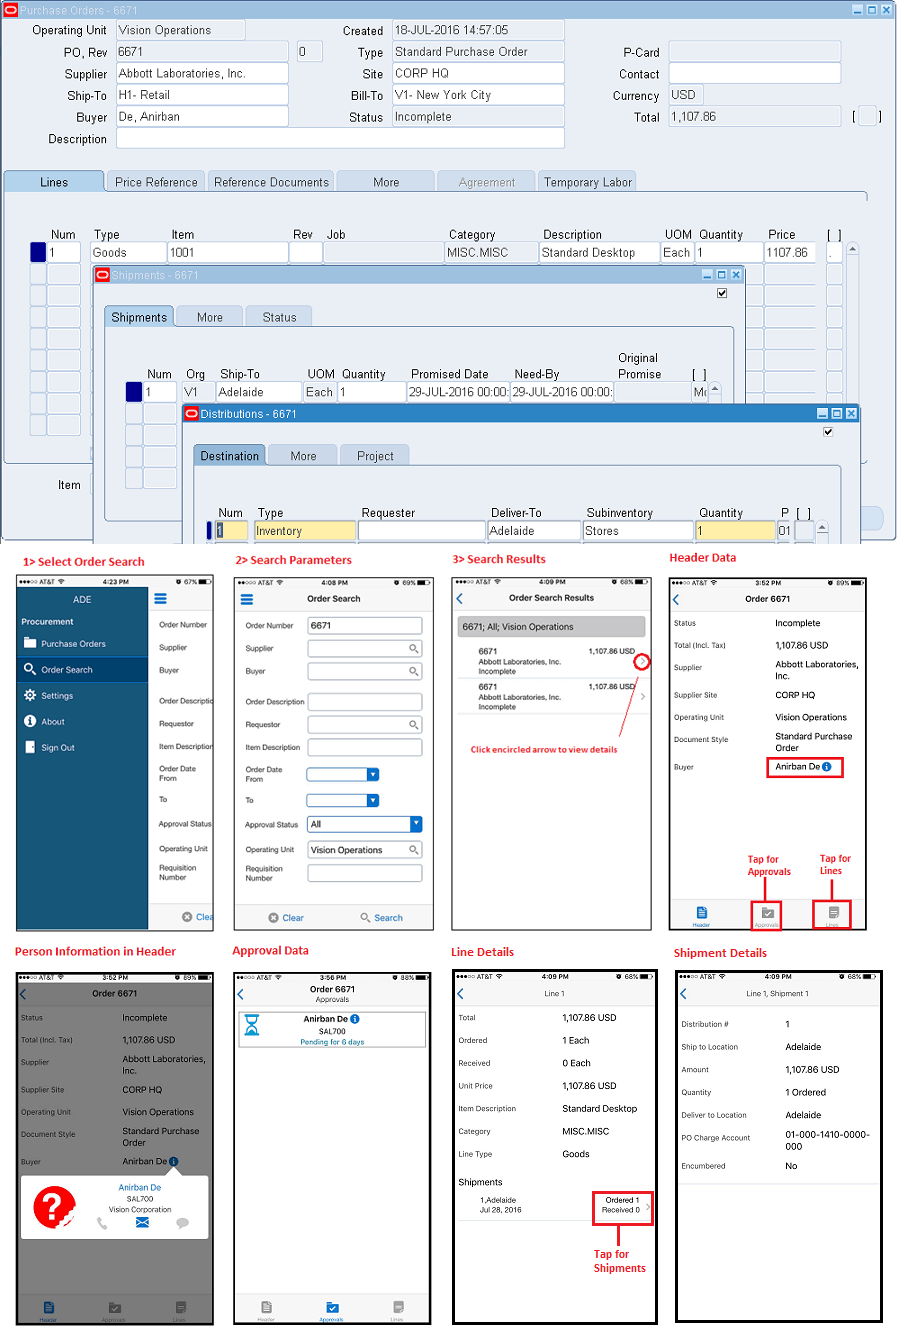 Oracle EBS Mobile Apps: Don't Make Your Business Wait!